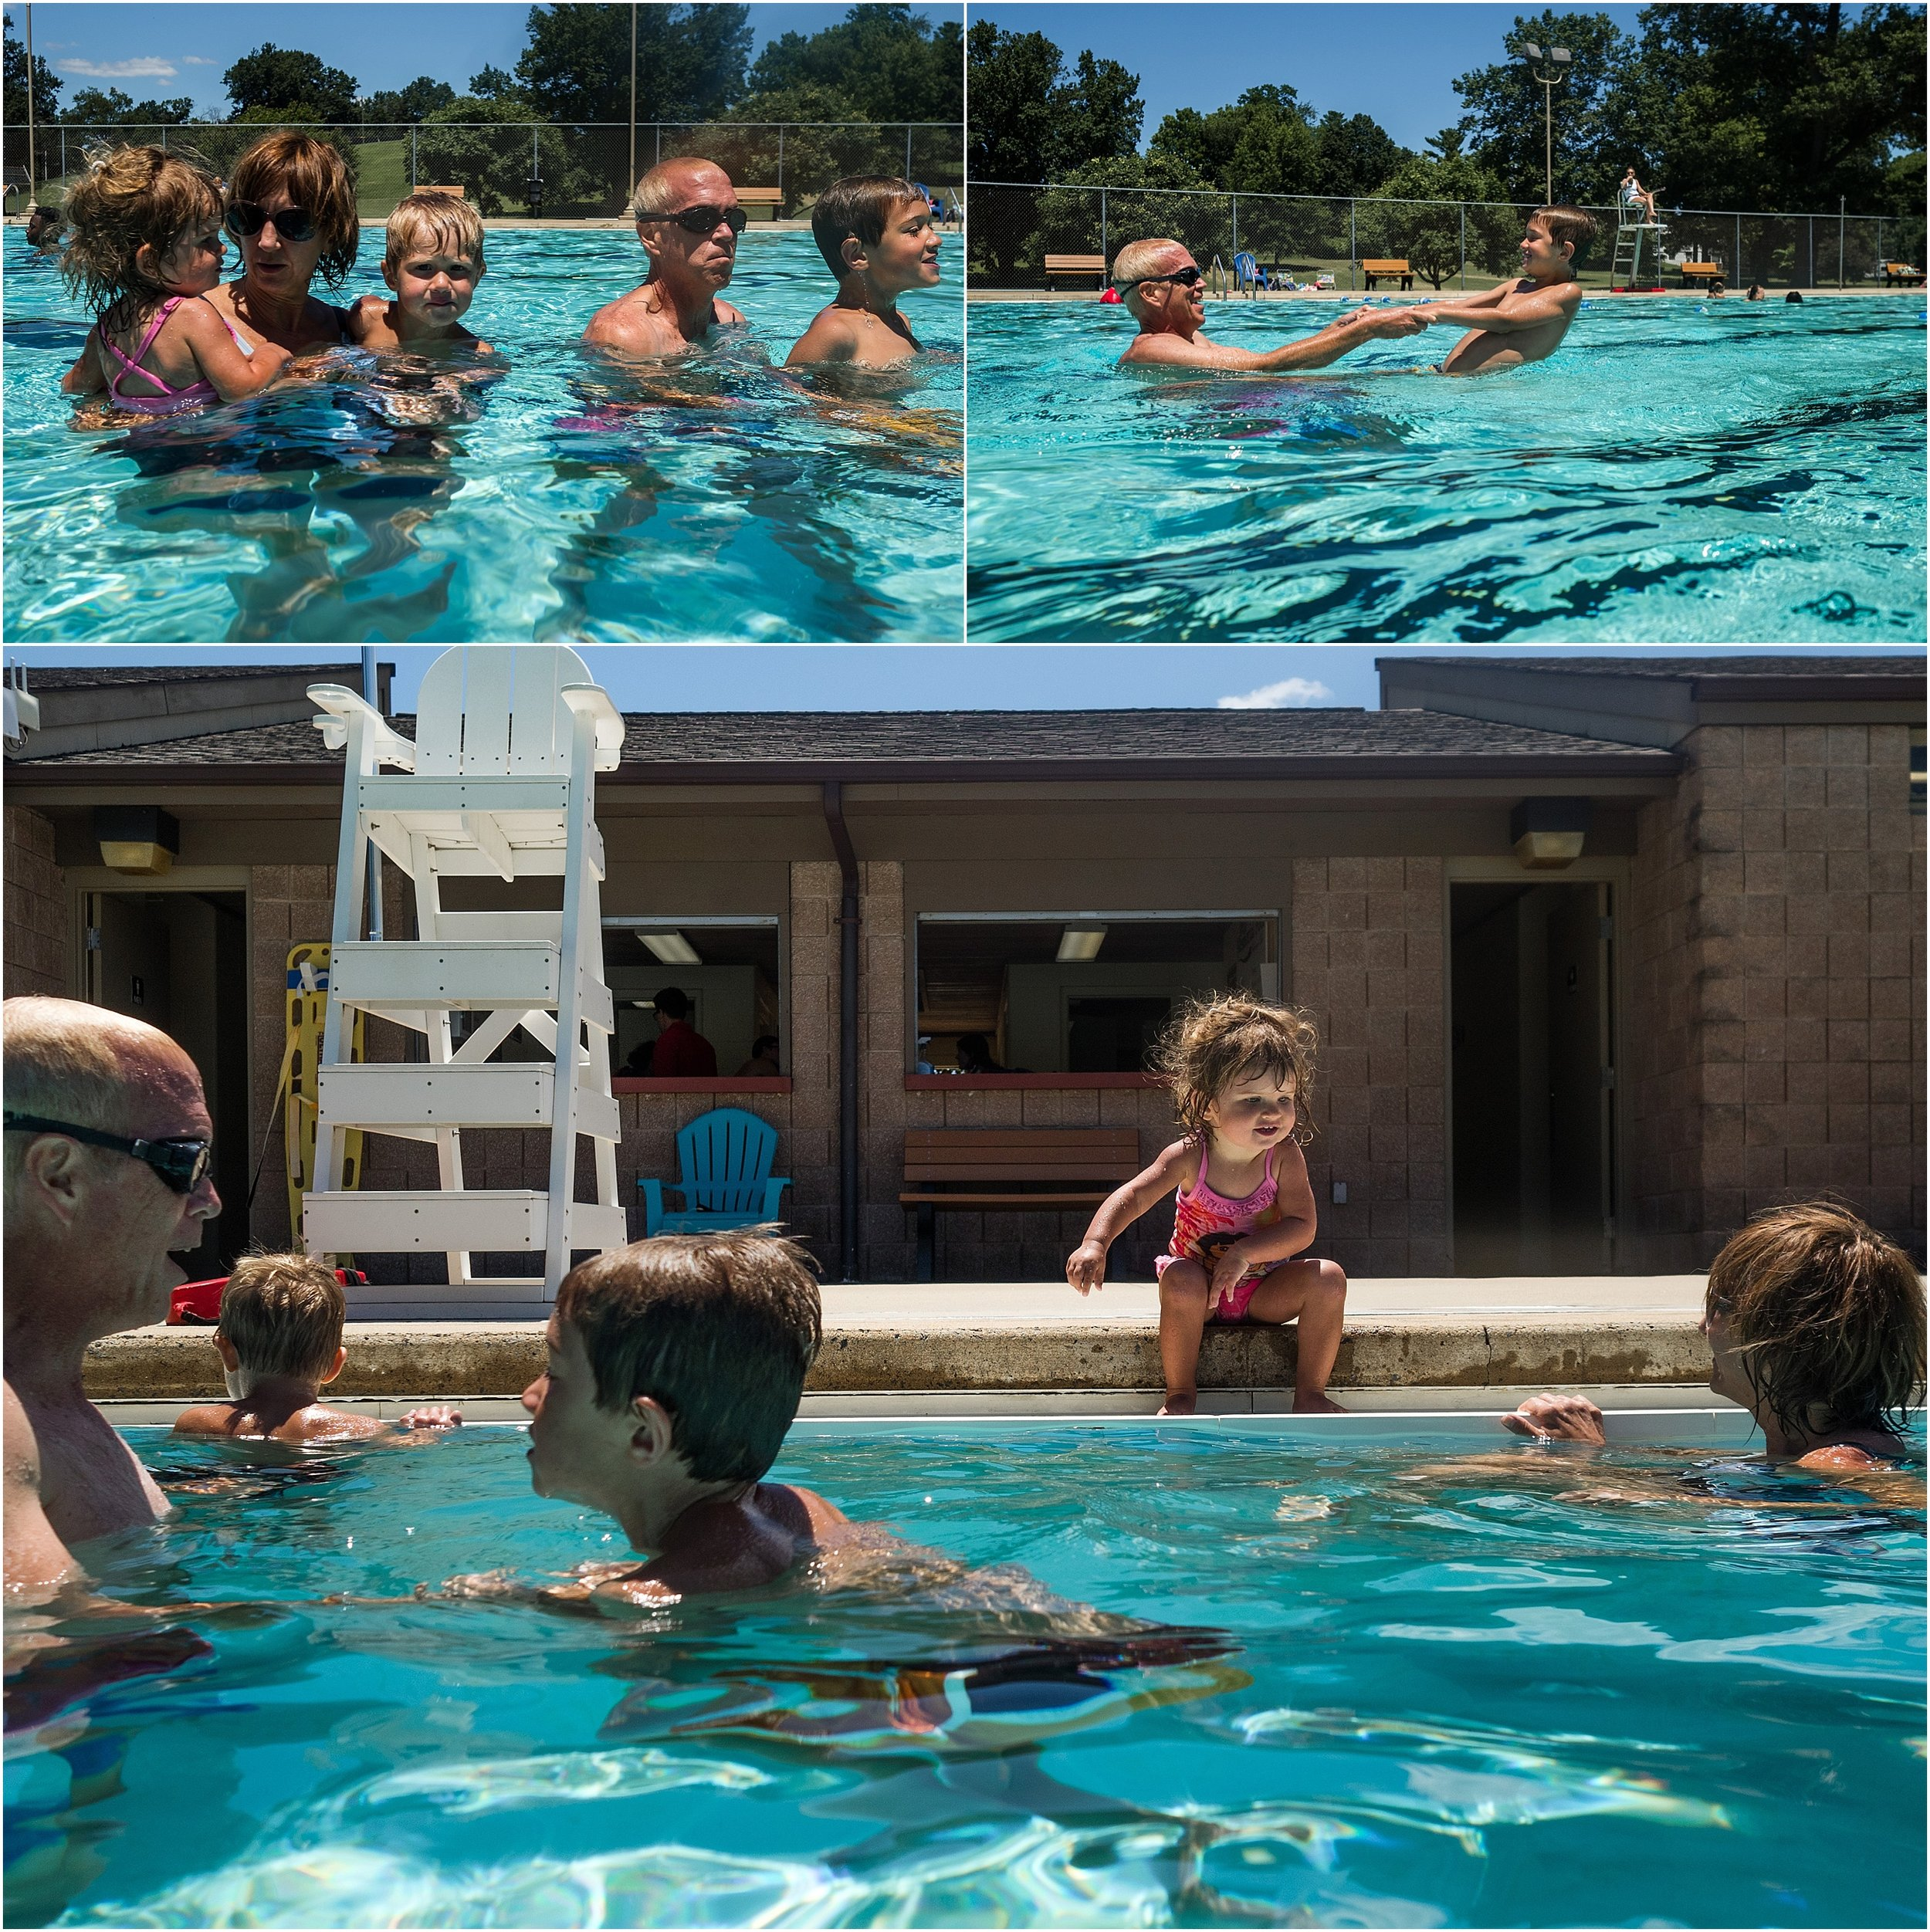 swimming pool with family, grandparents and kids